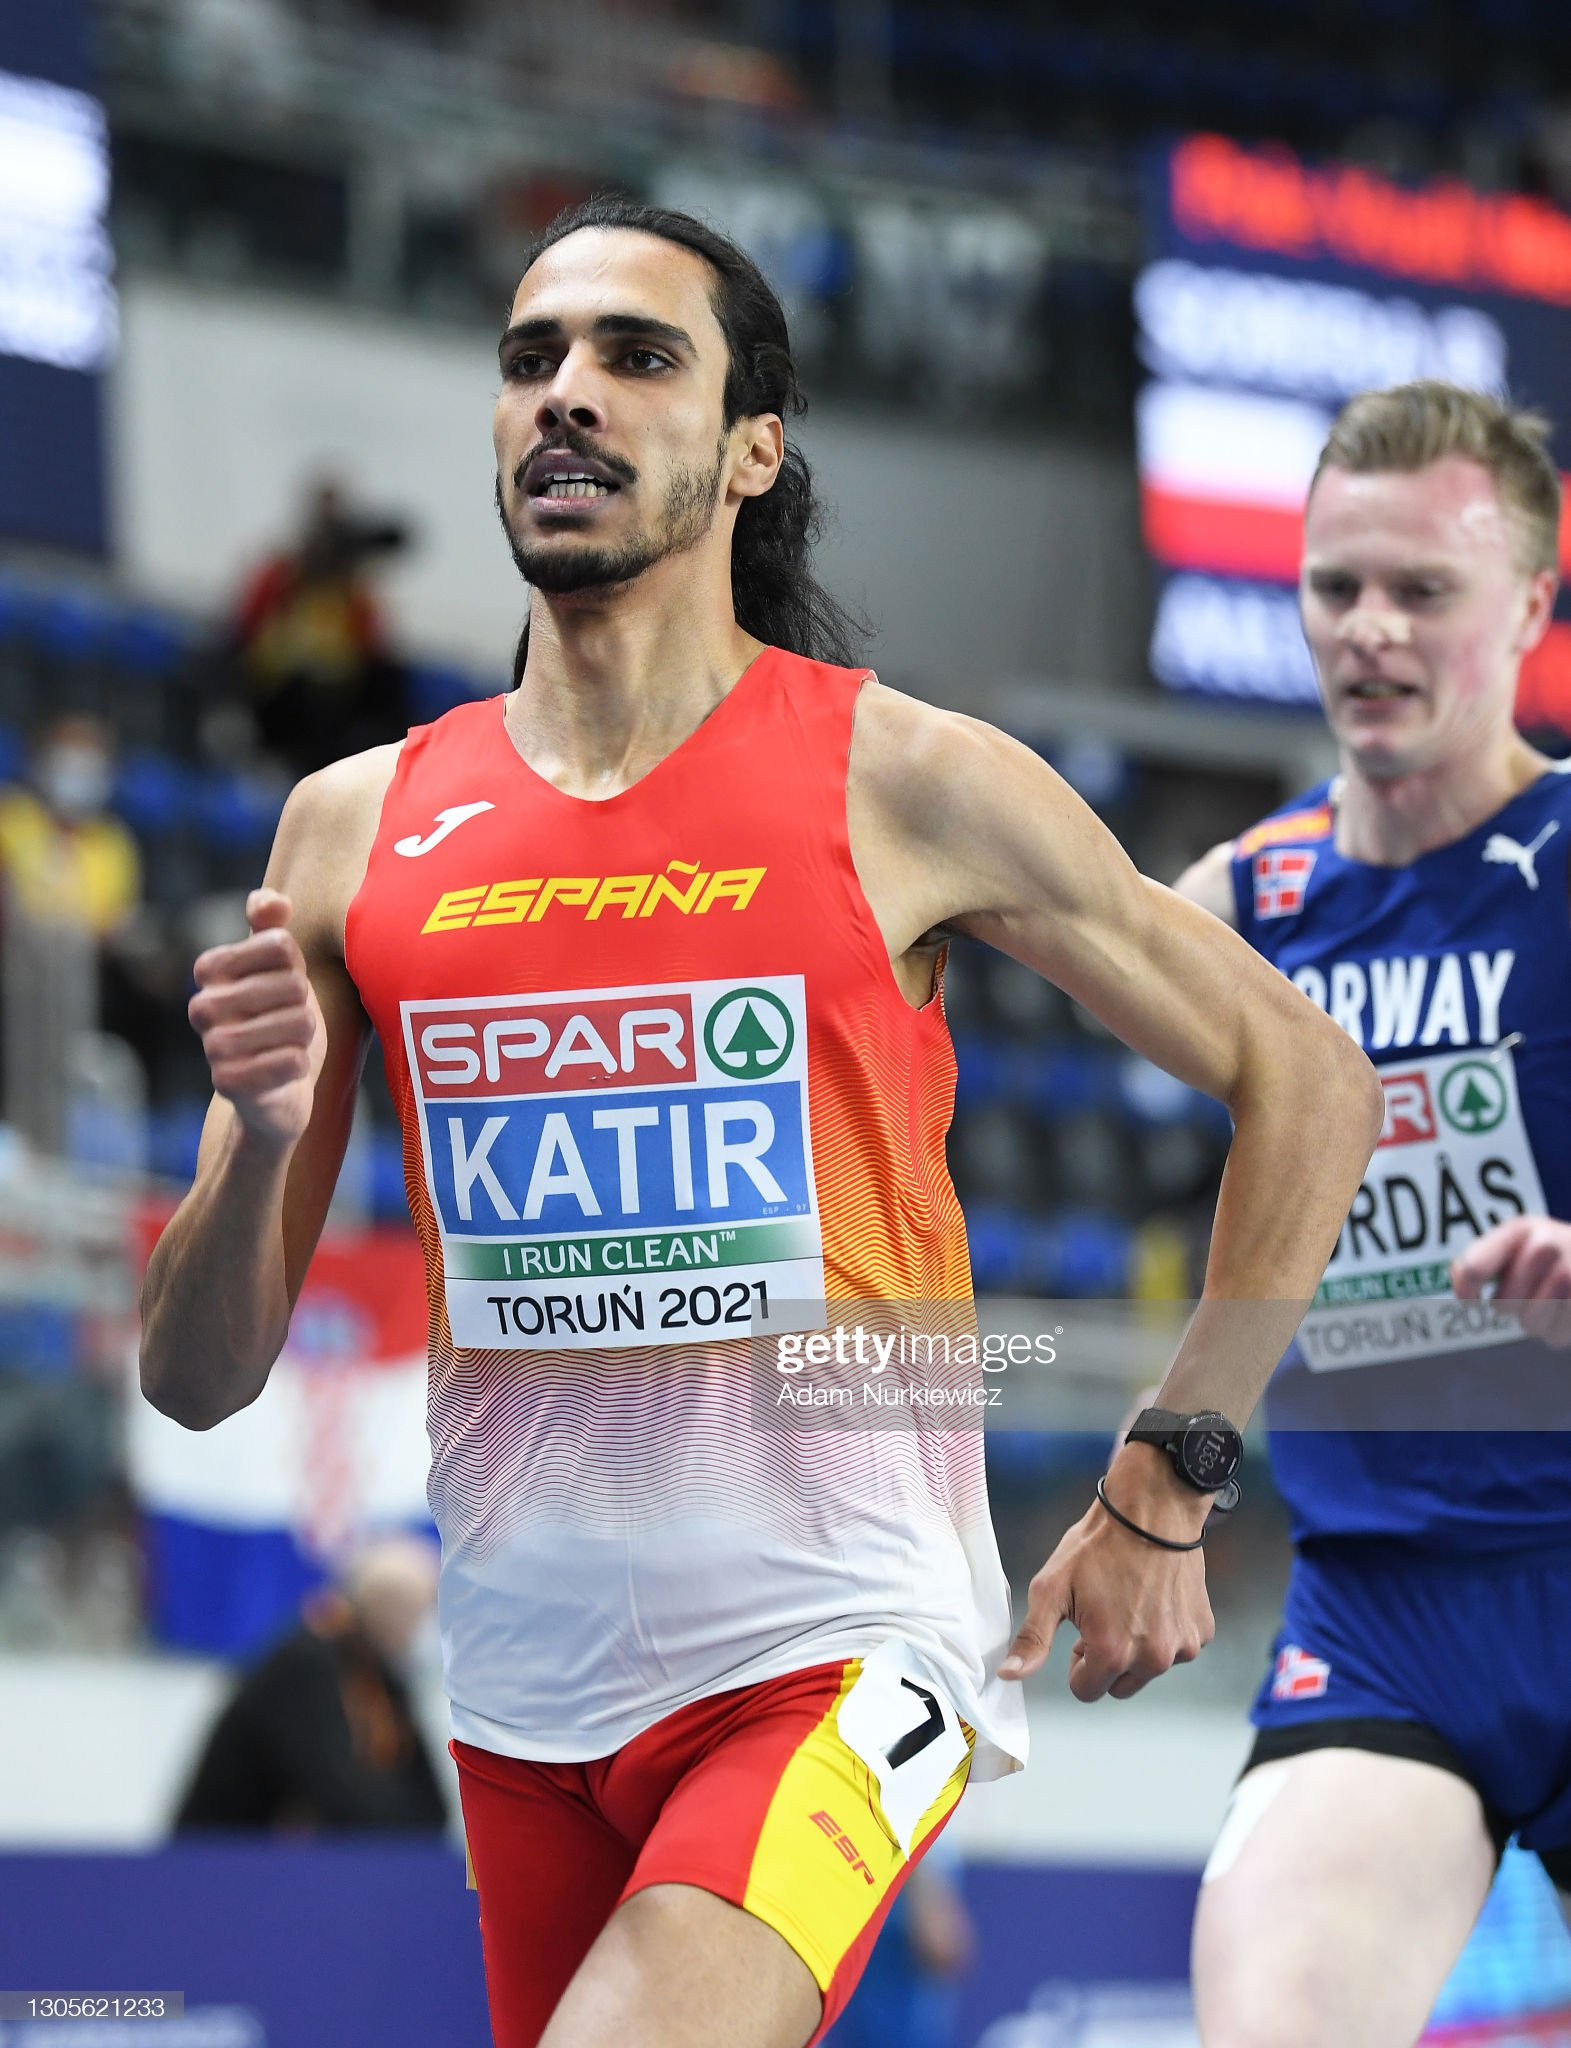 ¿Cuánto mide Mohamed Katir? - Altura - Real height Mohamed-katir-of-spain-competes-in-the-mens-3000-metres-during-the-picture-id1305621233?s=2048x2048